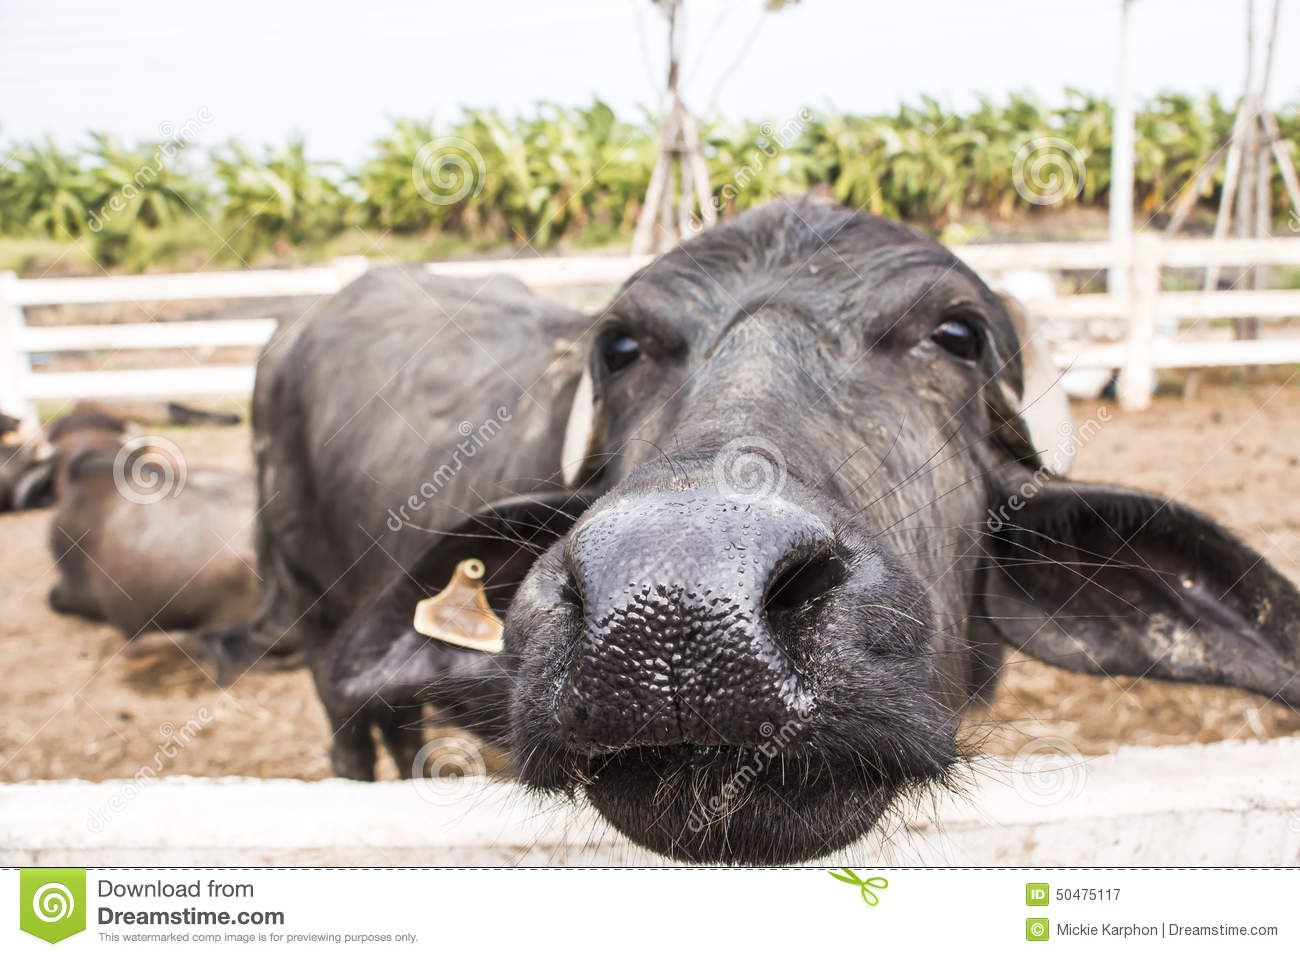 Murrah buffalo nose stock image  Image of water, grass